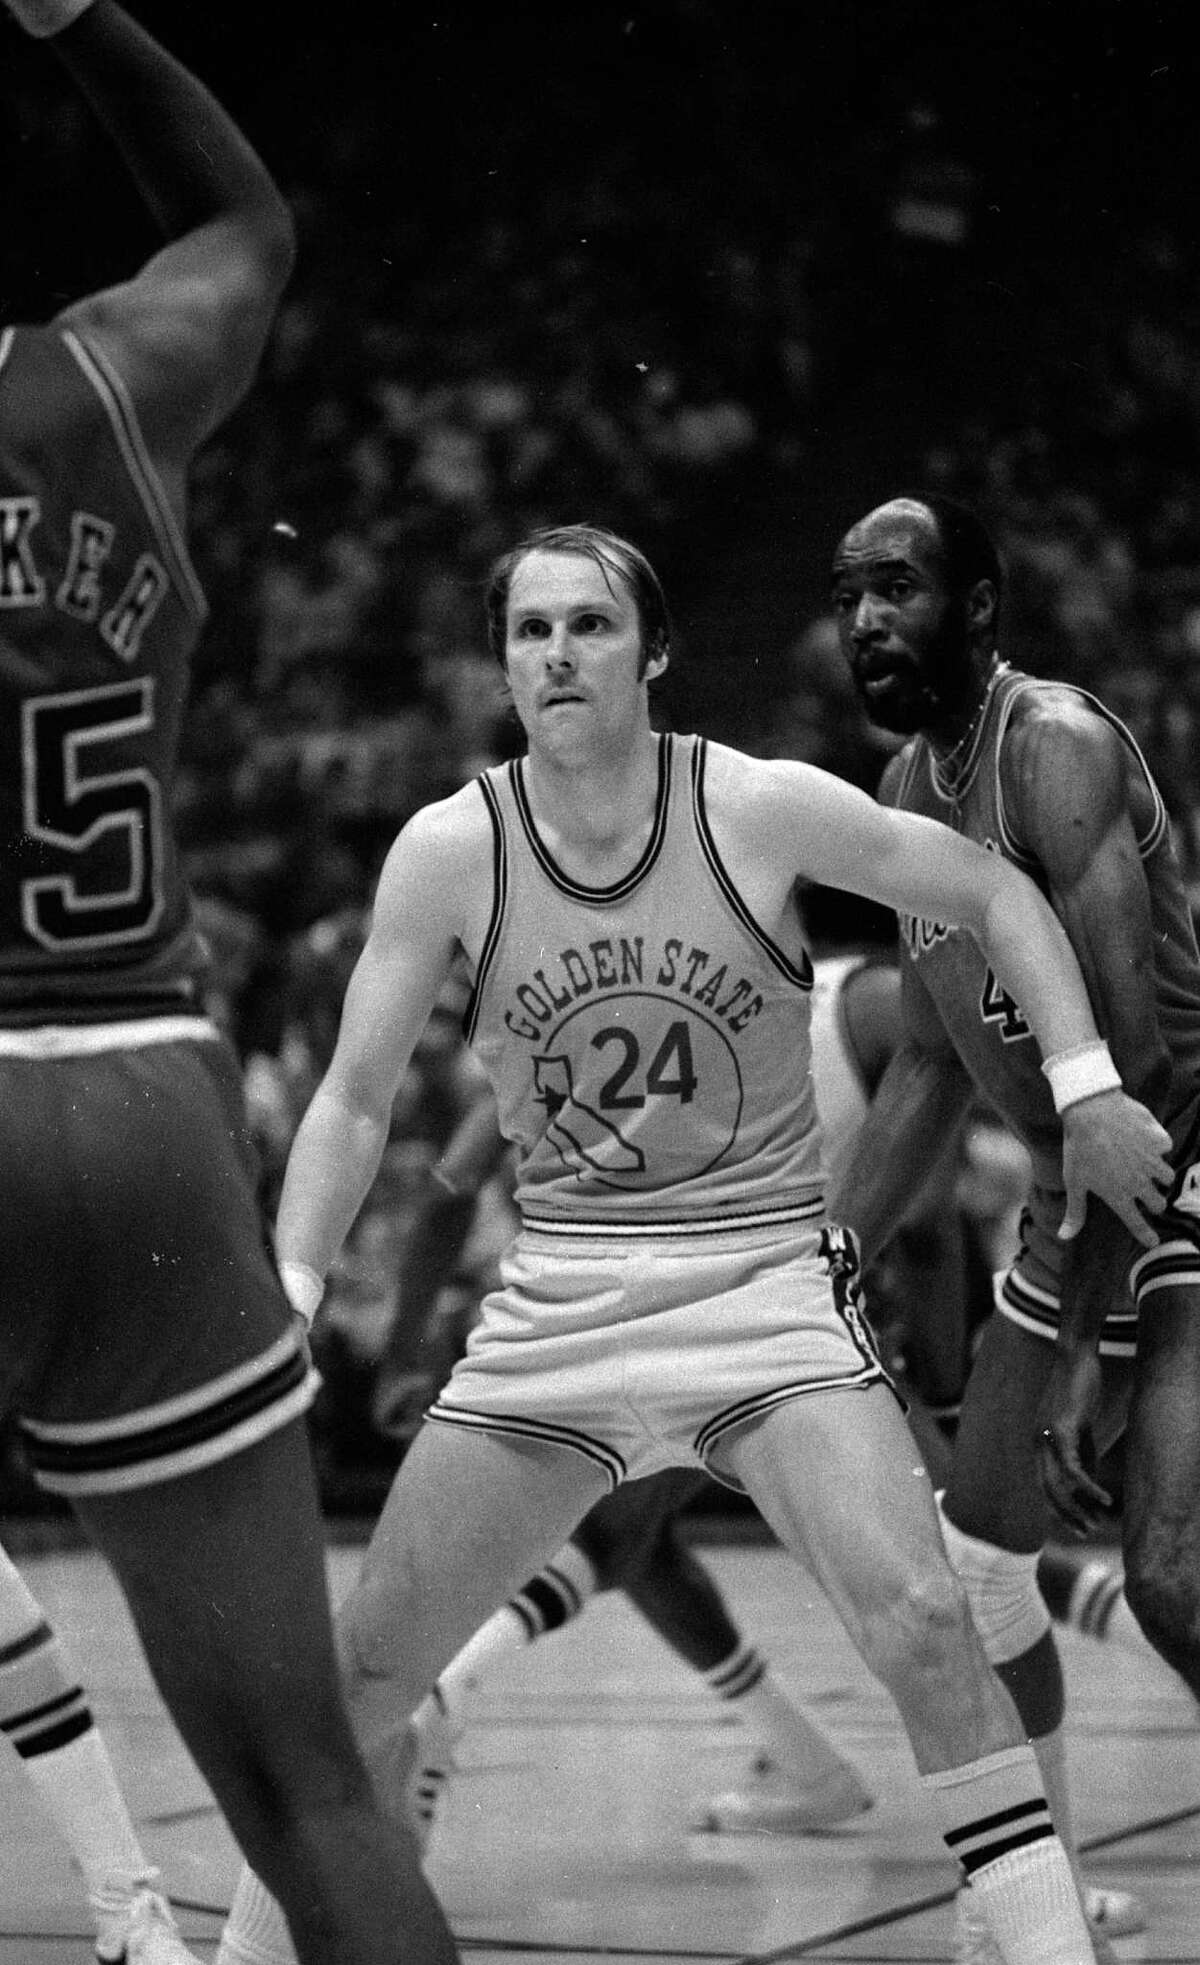 Western Conference finals, Game 6, 1975: Huge candidate here. The Warriors were down 3-2 and heading into Chicago, home of Jerry Sloan, Norm Van Lier and a very nasty opponent. The Warriors were down 11 at halftime, but Rick Barry's 36 points led an 86-72 victory that brought the series back to Oakland, where Golden State won Game 7 and advanced to the Finals. This game falls short of Saturday night's only because the score wasn't close.